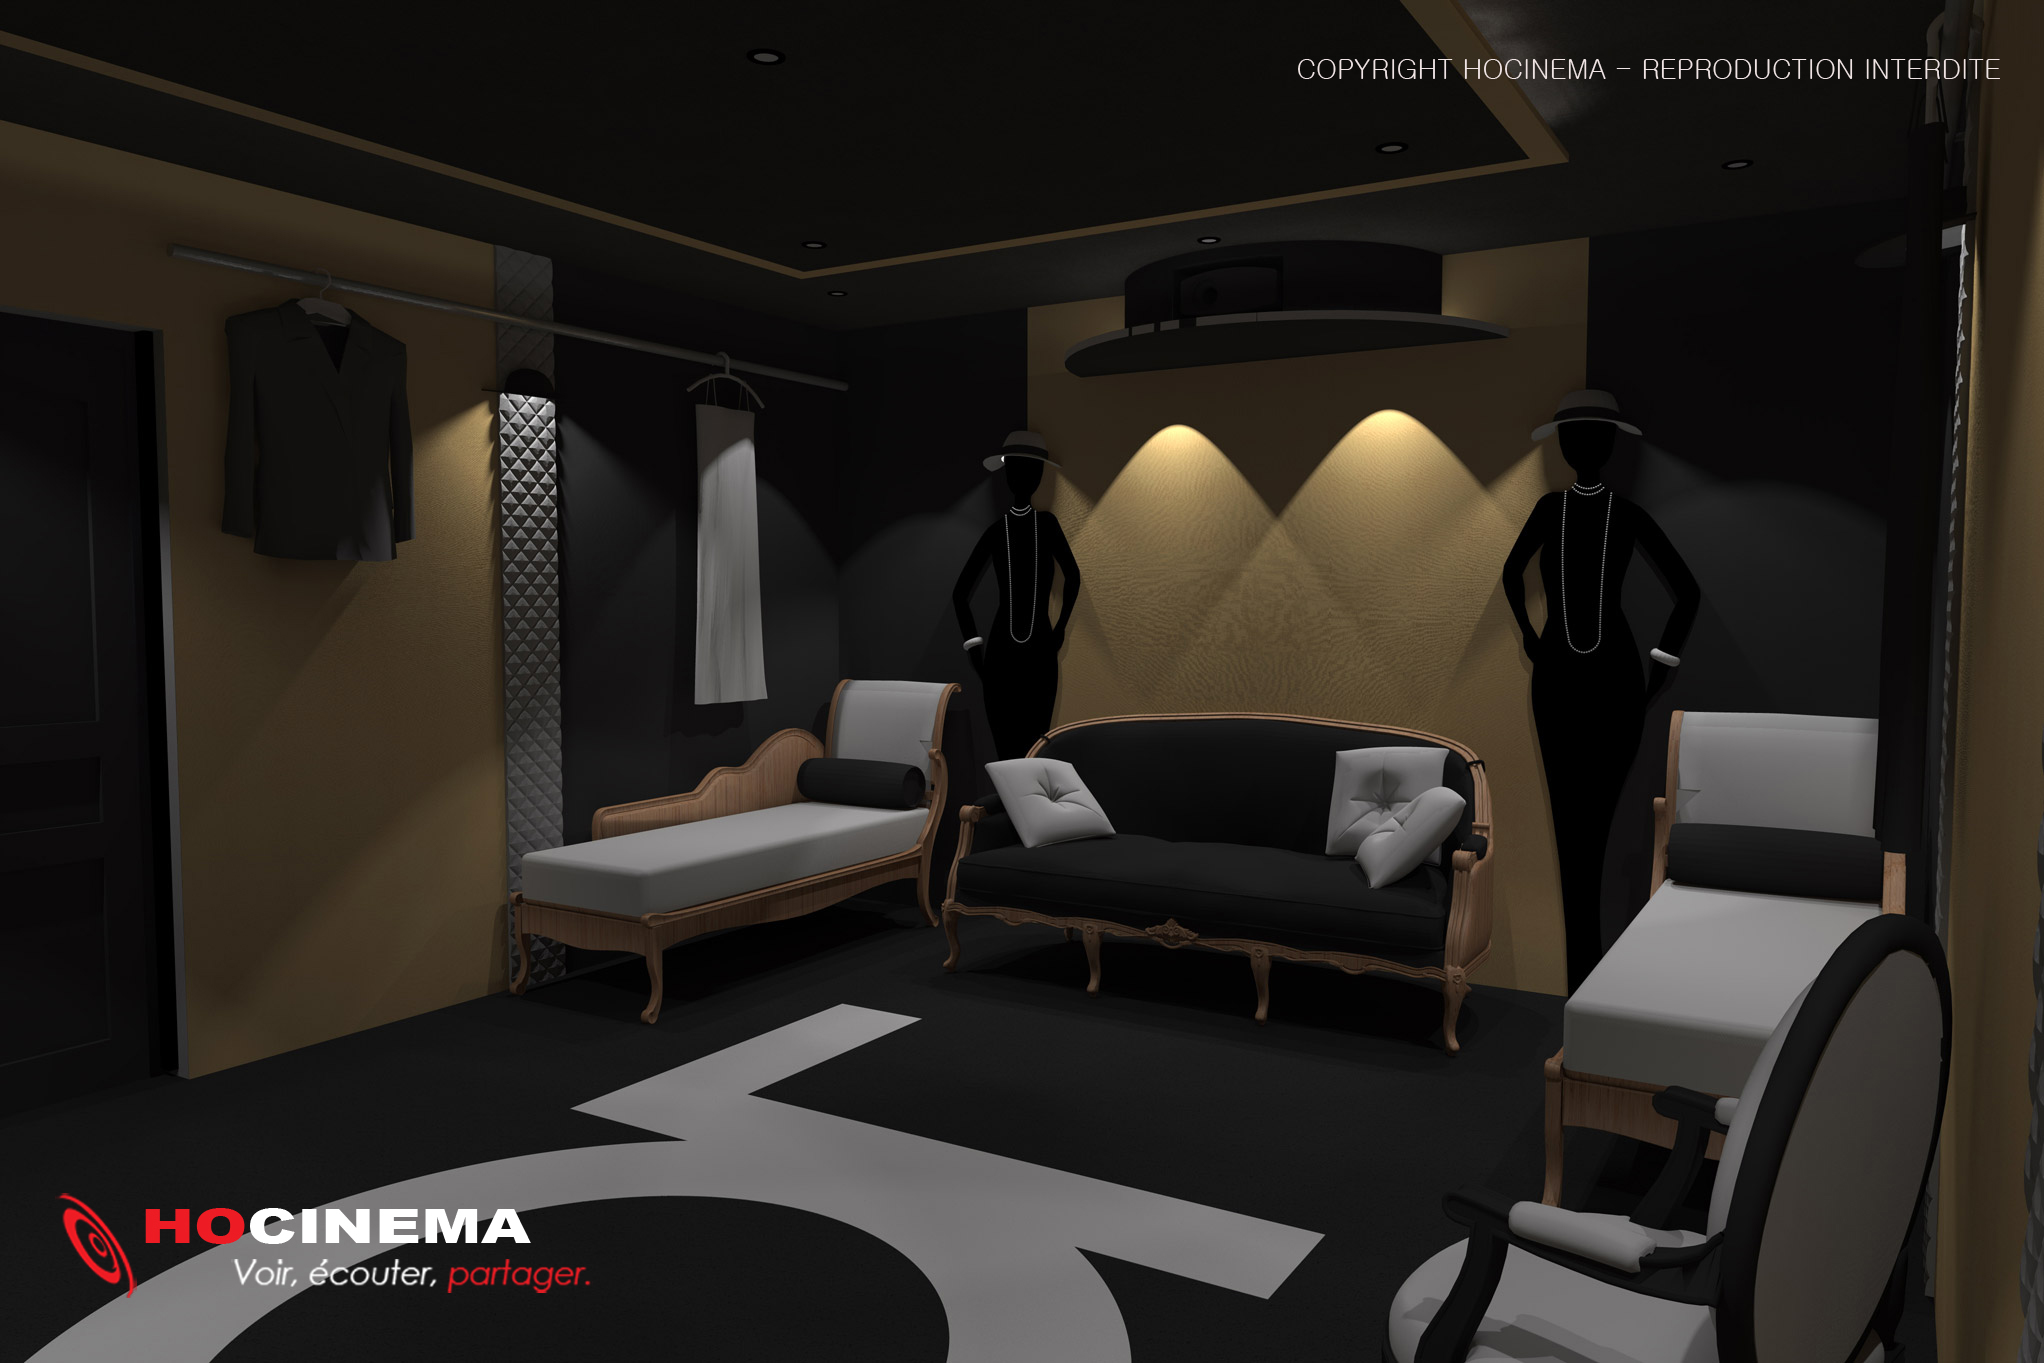 le concept 03f un cin ma priv r alis sur mesure. Black Bedroom Furniture Sets. Home Design Ideas